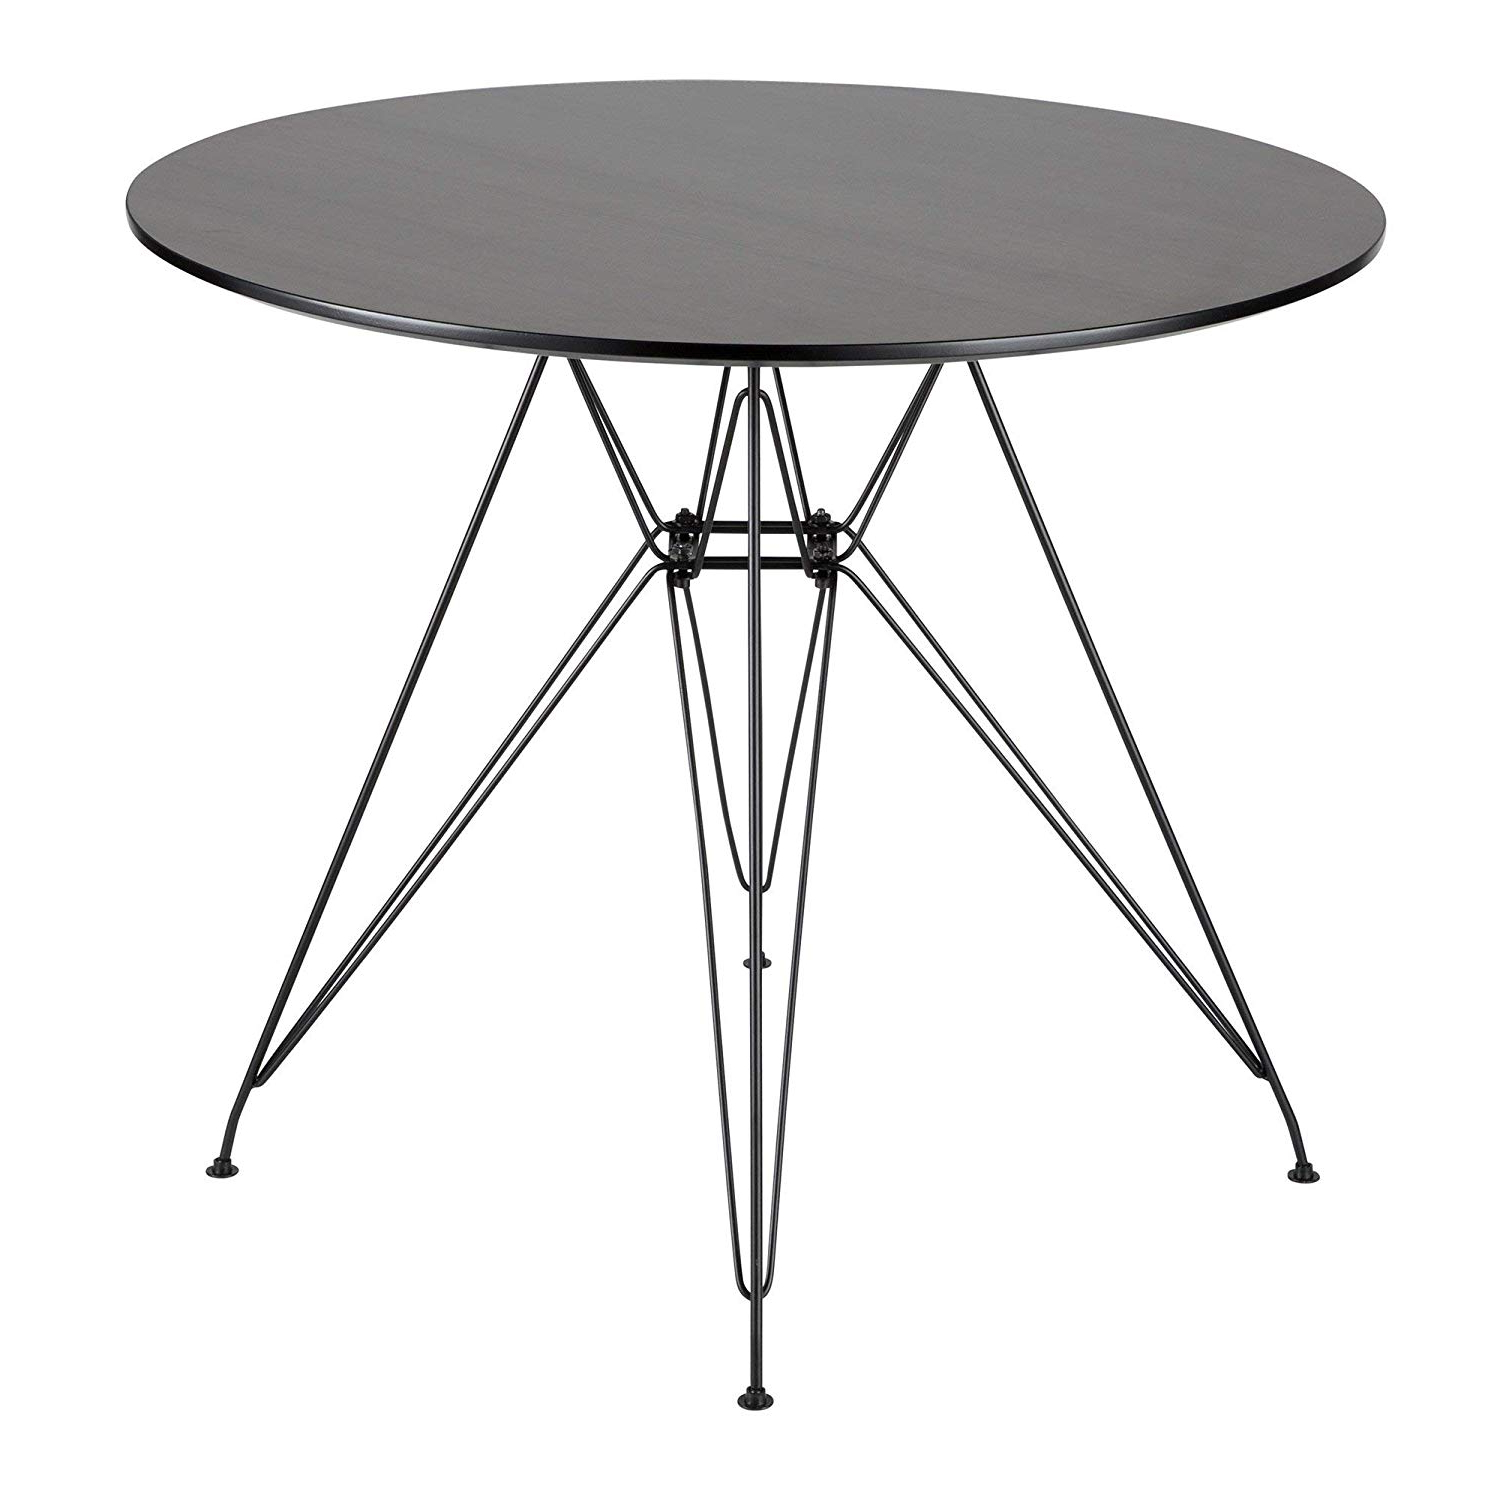 Amazon – Avery Round Dining Table In Black And Walnut With Well Known Avery Rectangular Dining Tables (View 12 of 25)